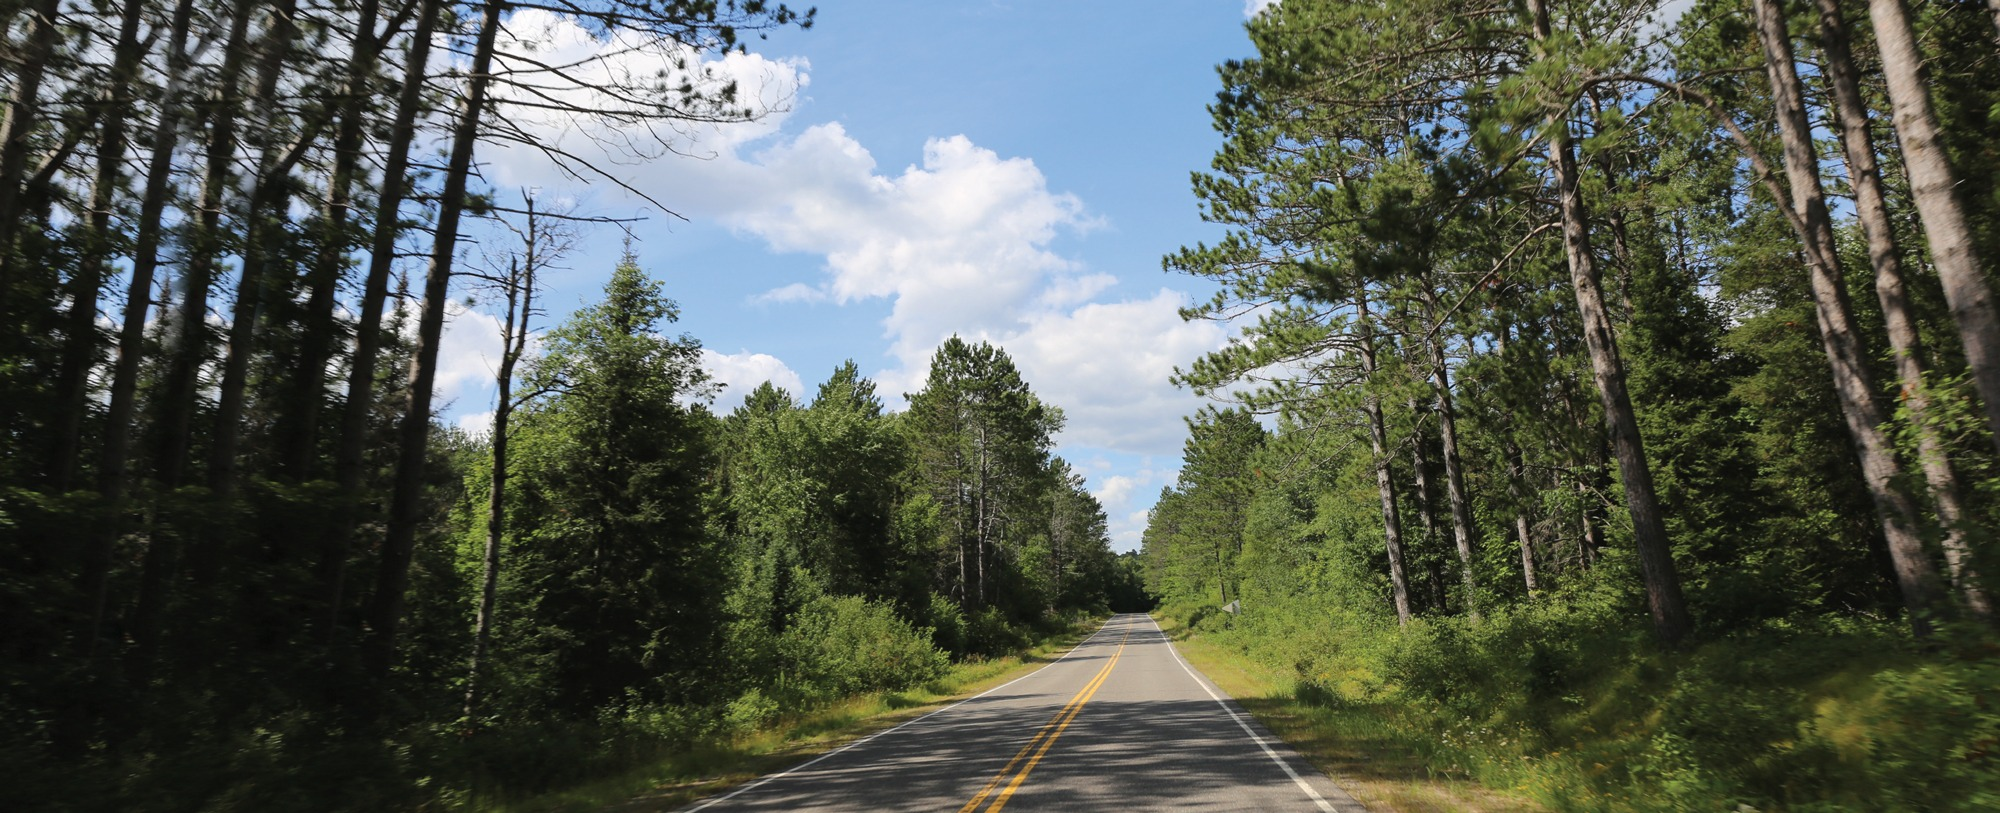 Take a road trip to Vilas County this summer!